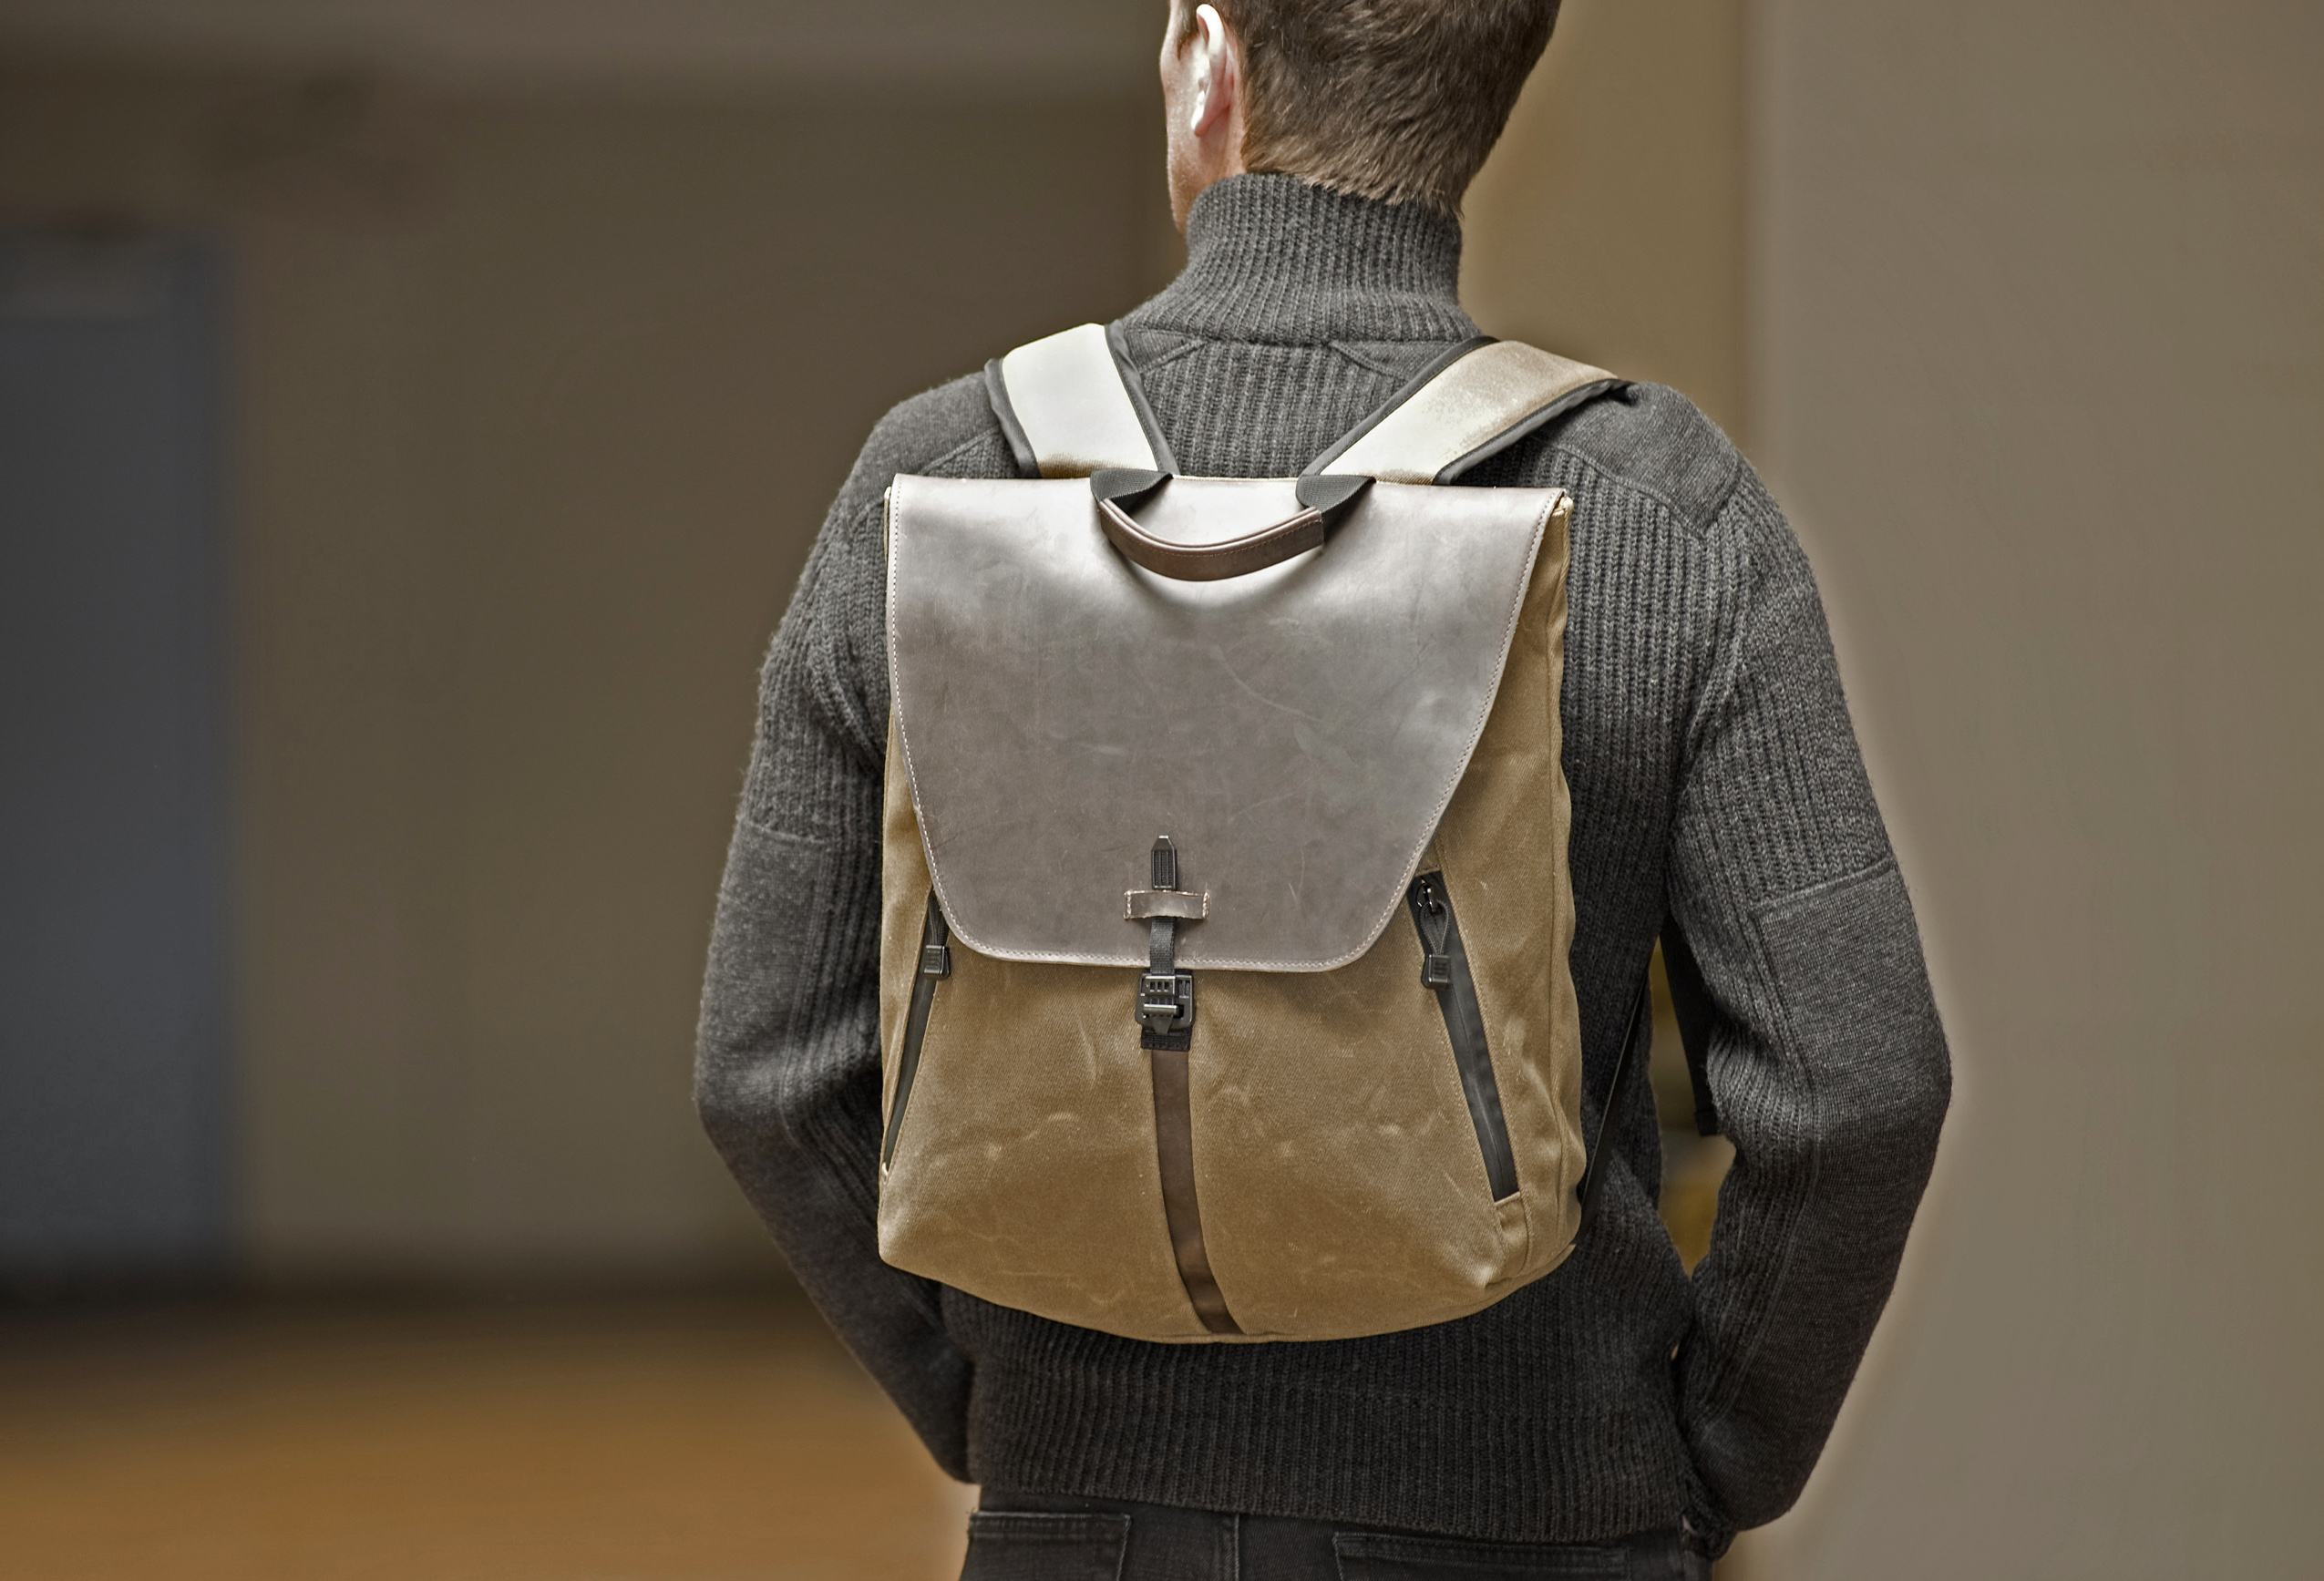 Stad BackPack - Stout - Waxed Canvas